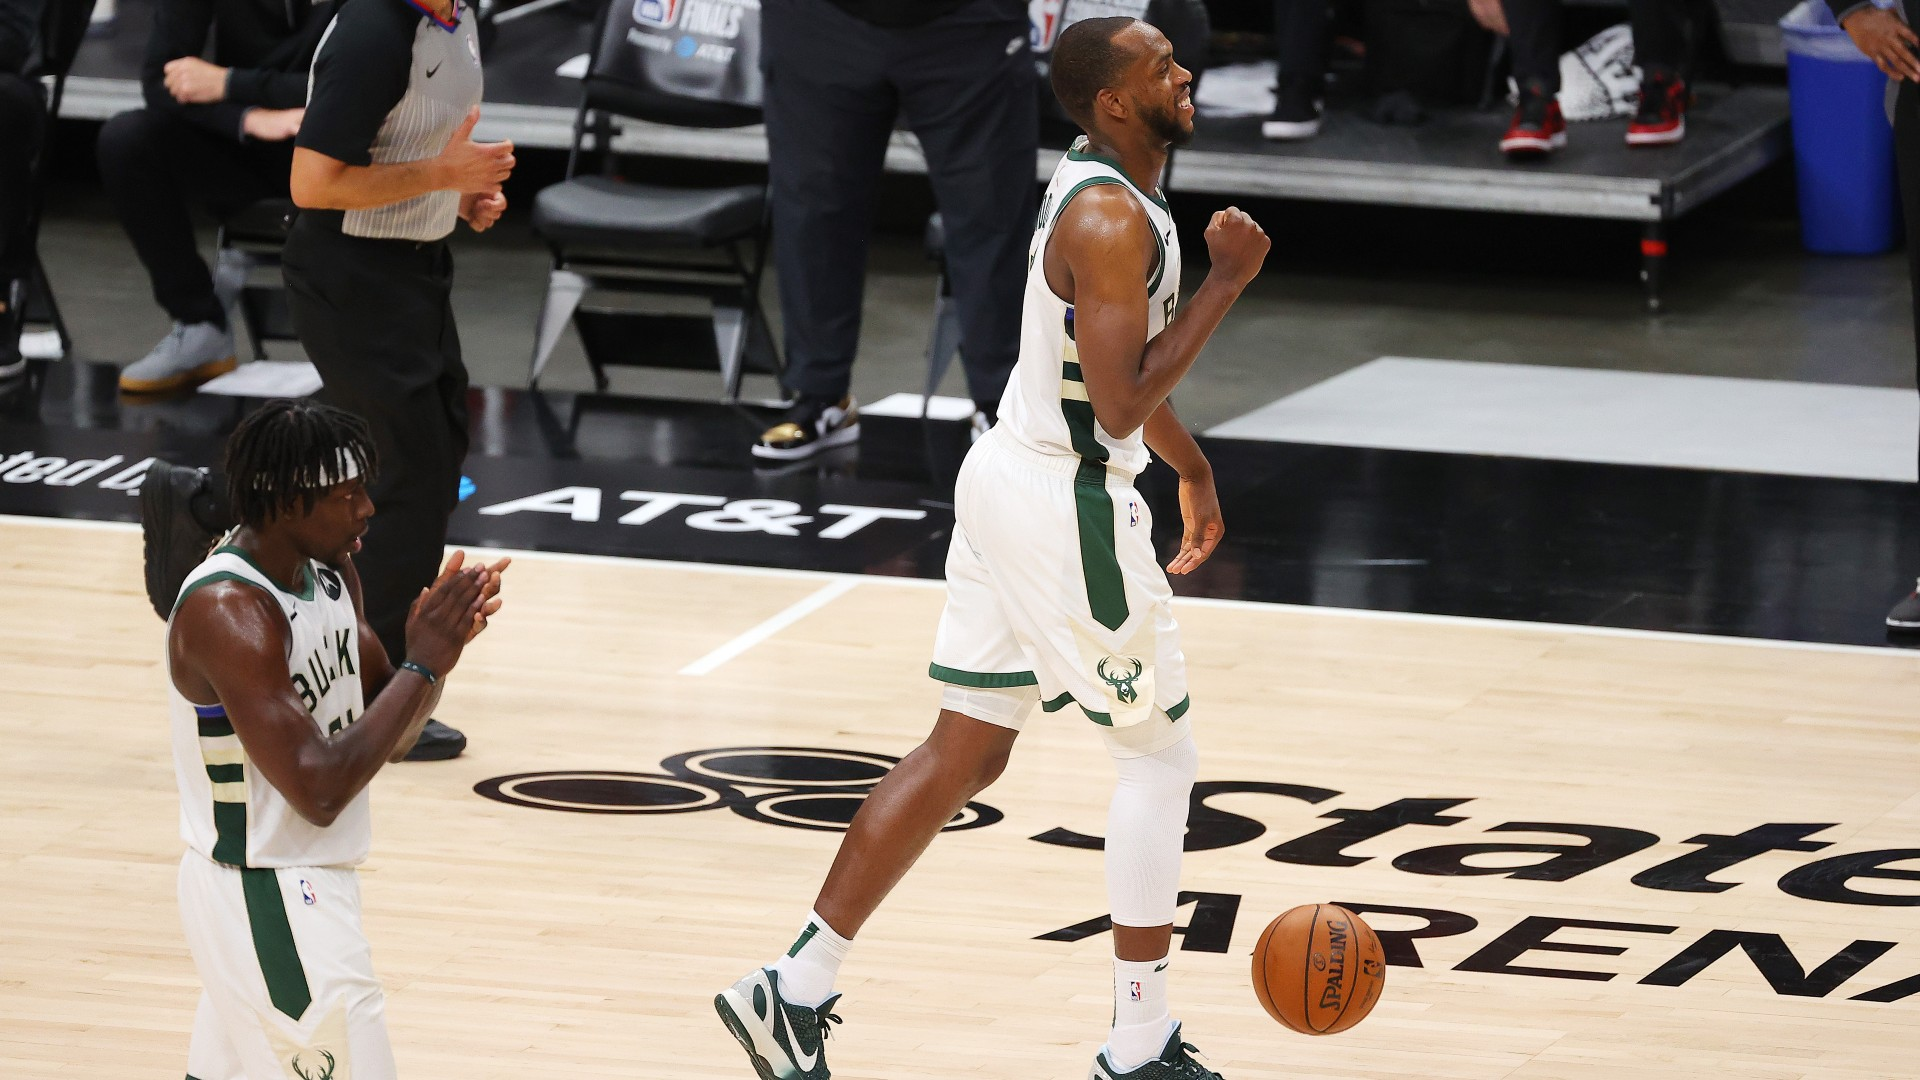 With or without Giannis Antetokounmpo, Khris Middleton has established himself as the Bucks' closer.